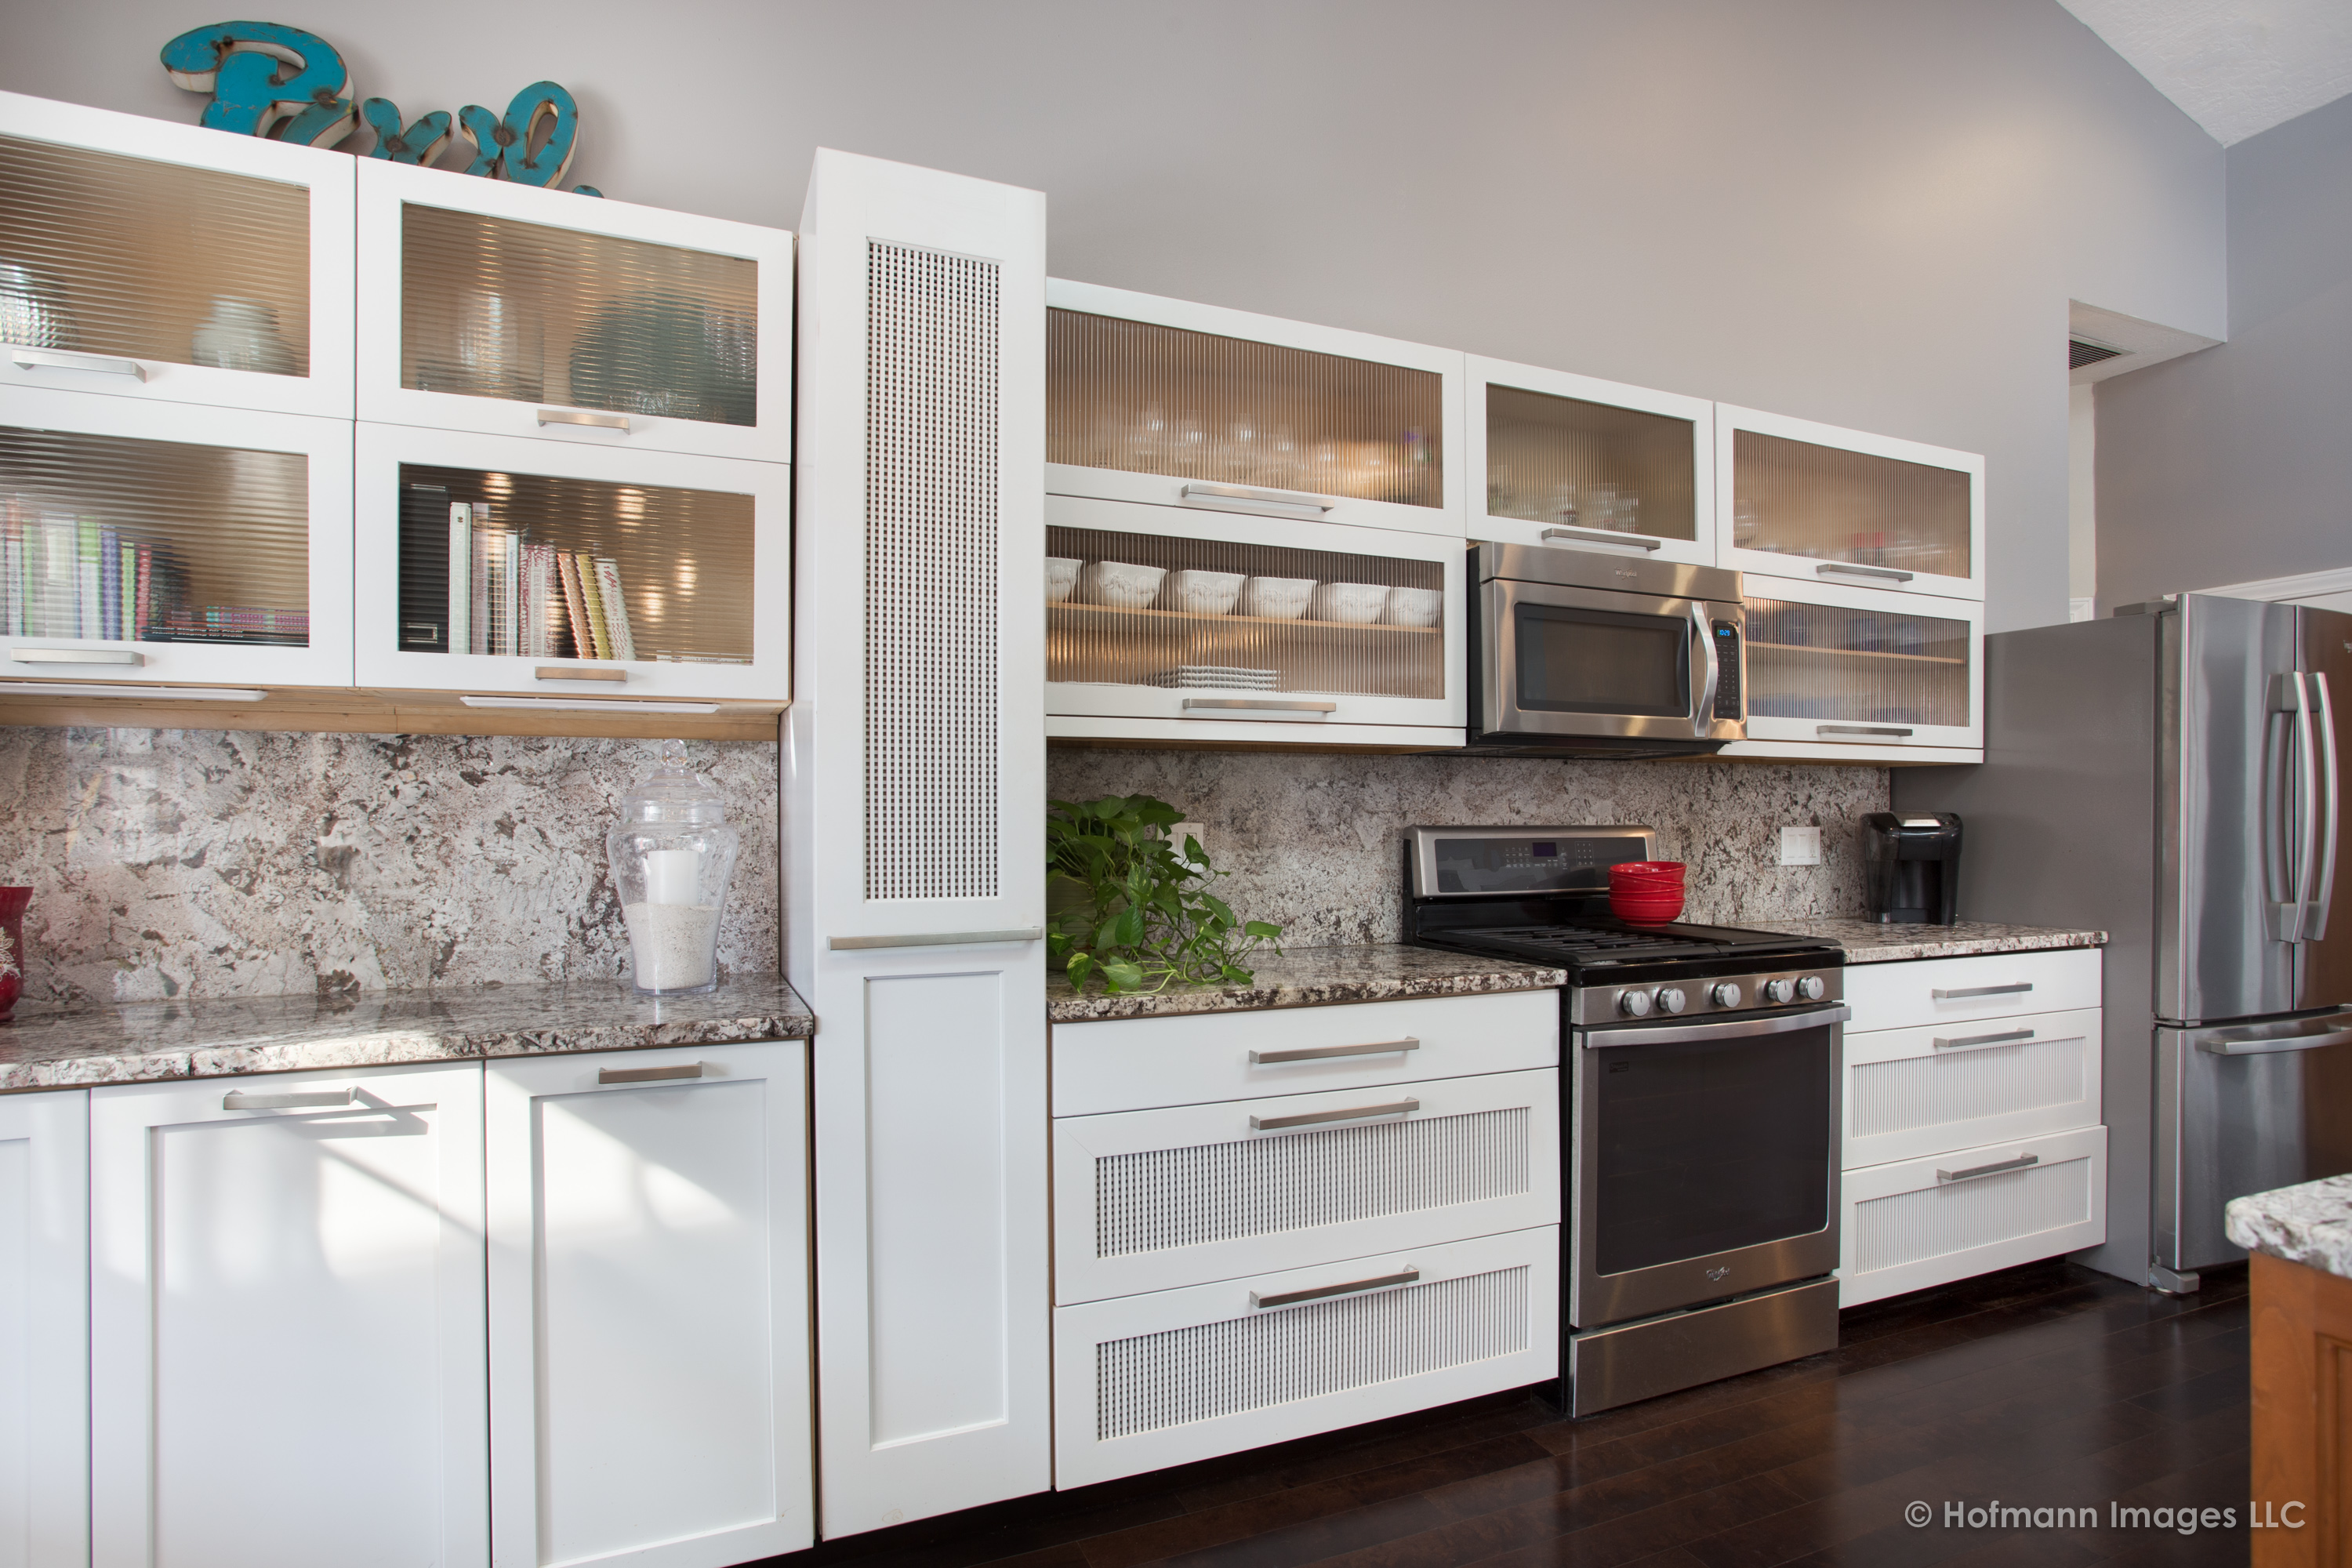 hofmann-images-kitchen-cabinetry